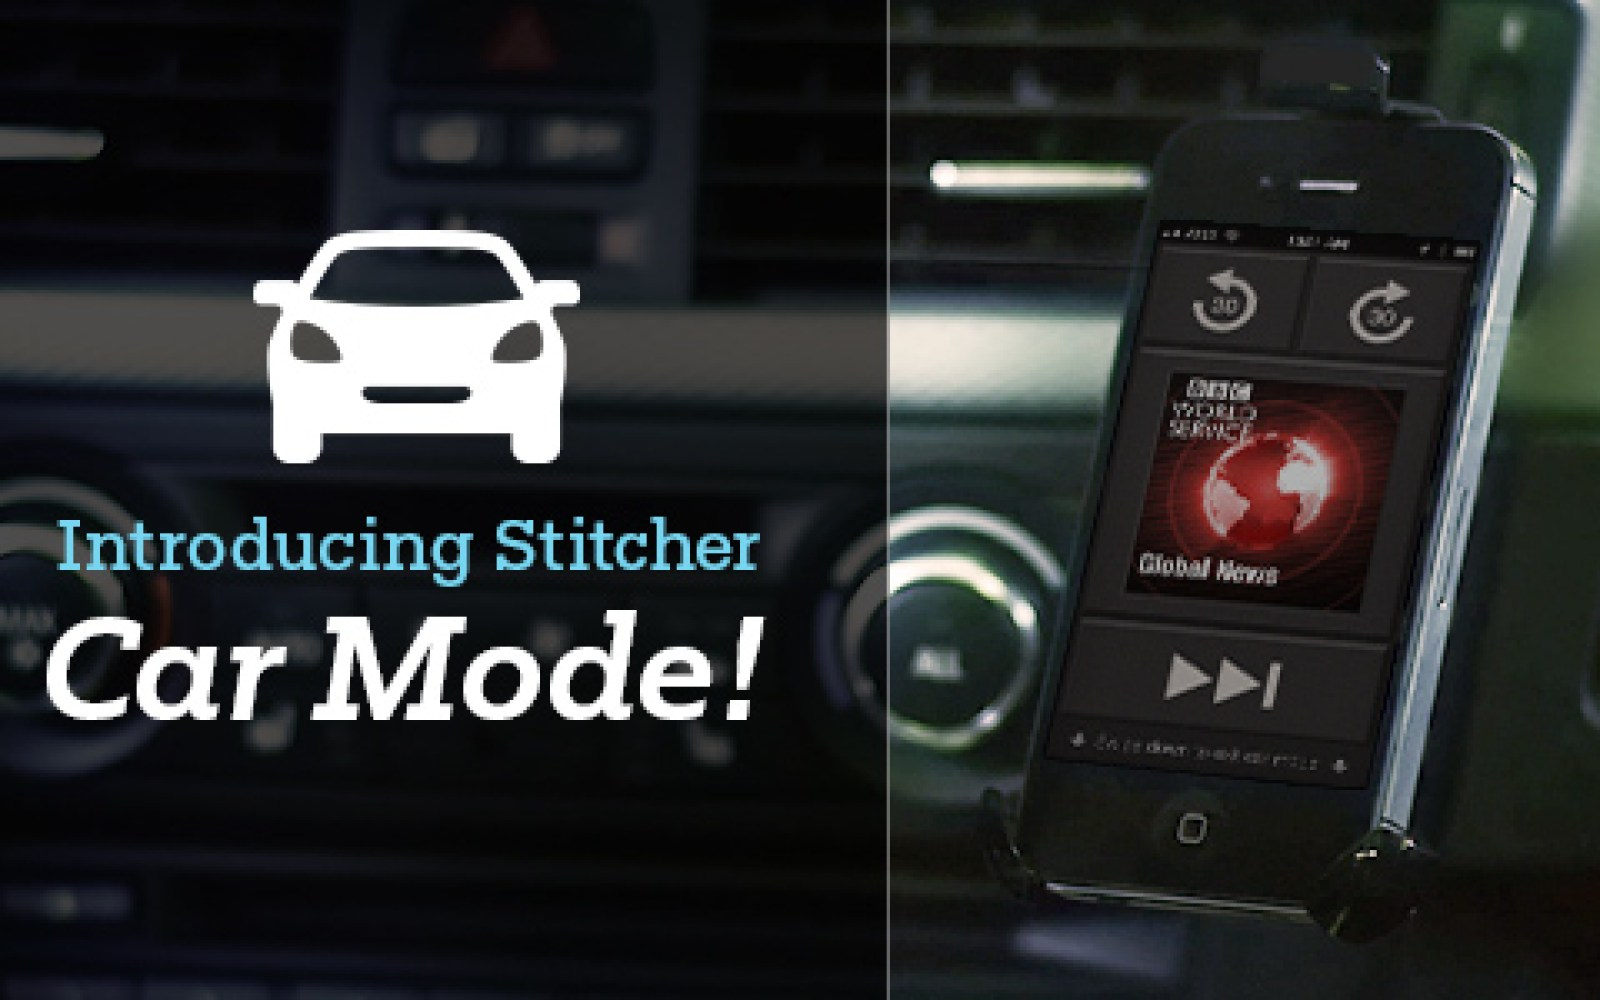 Stitcher Radio iPhone app updated with simplified 'Car Mode' UI for drivers